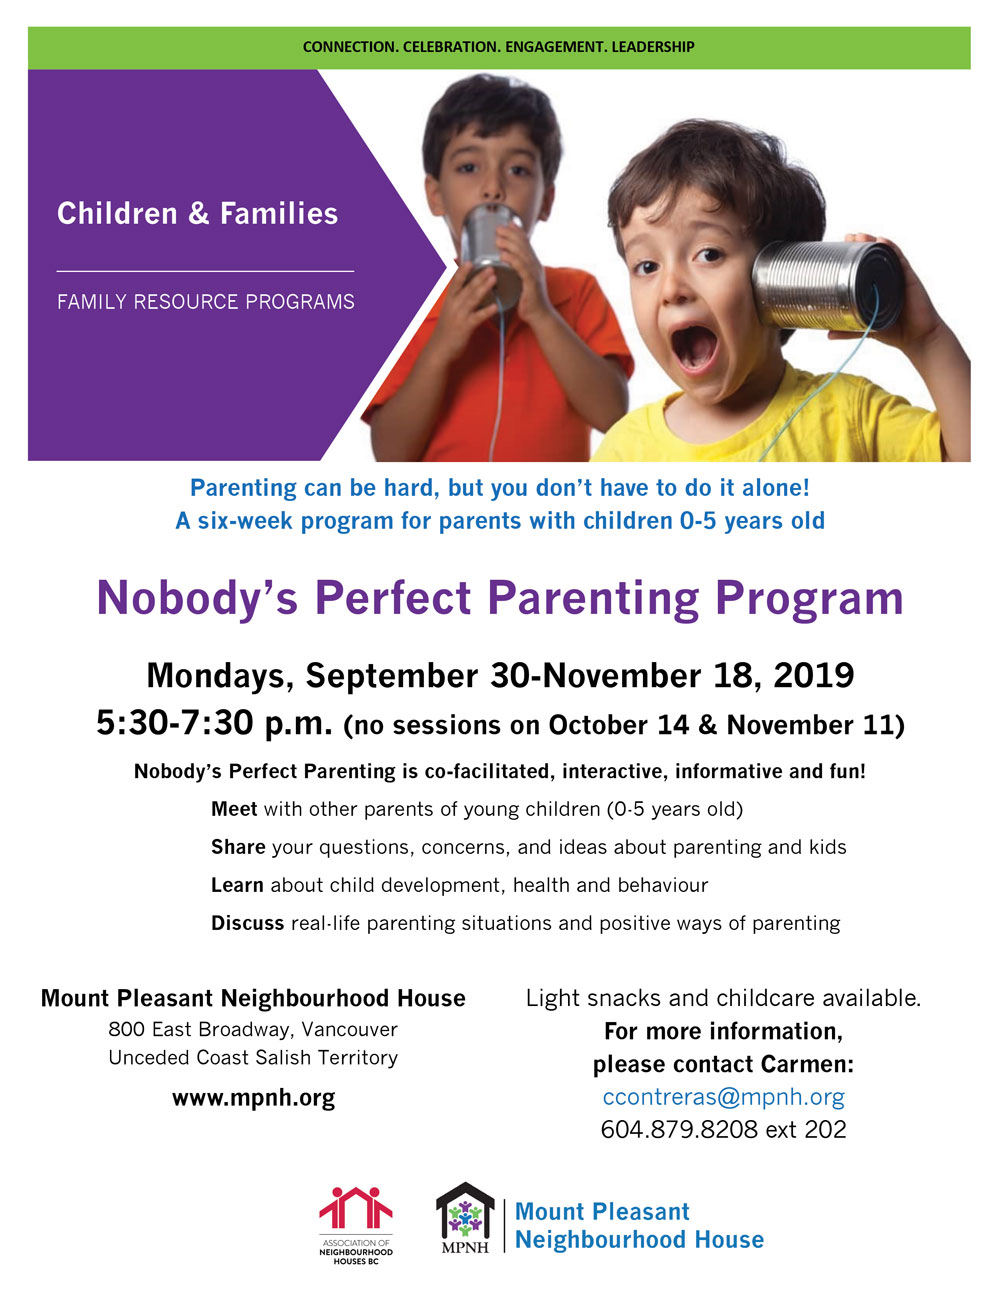 An image of the program poster, featuring a photo of two young children making faces and speaking into a tin cans attached by string.